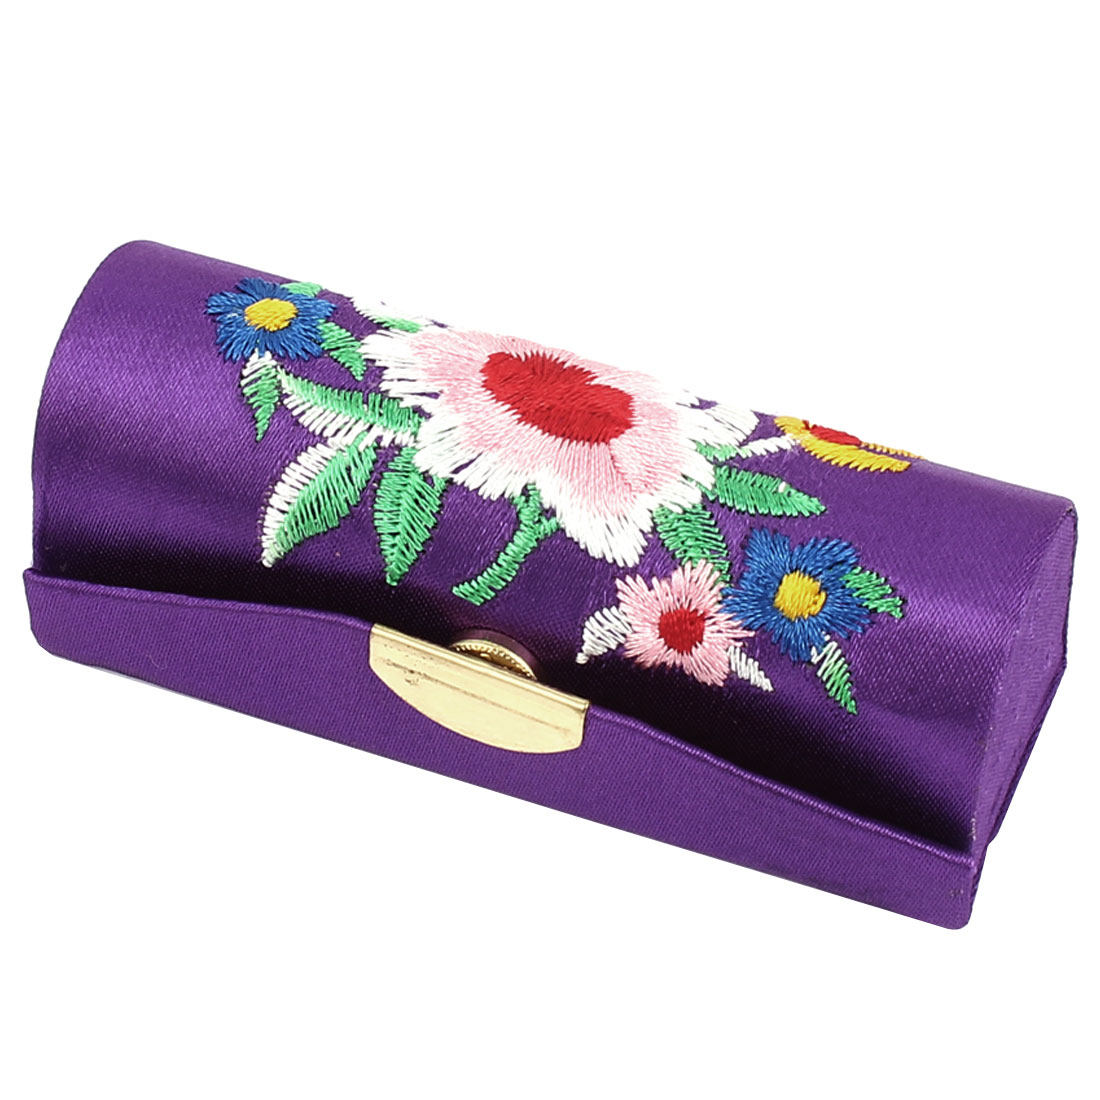 Lady Floral Embroidery Mirror Lipstick Lip Balm Chap Stick Case Container Box Holder Purple